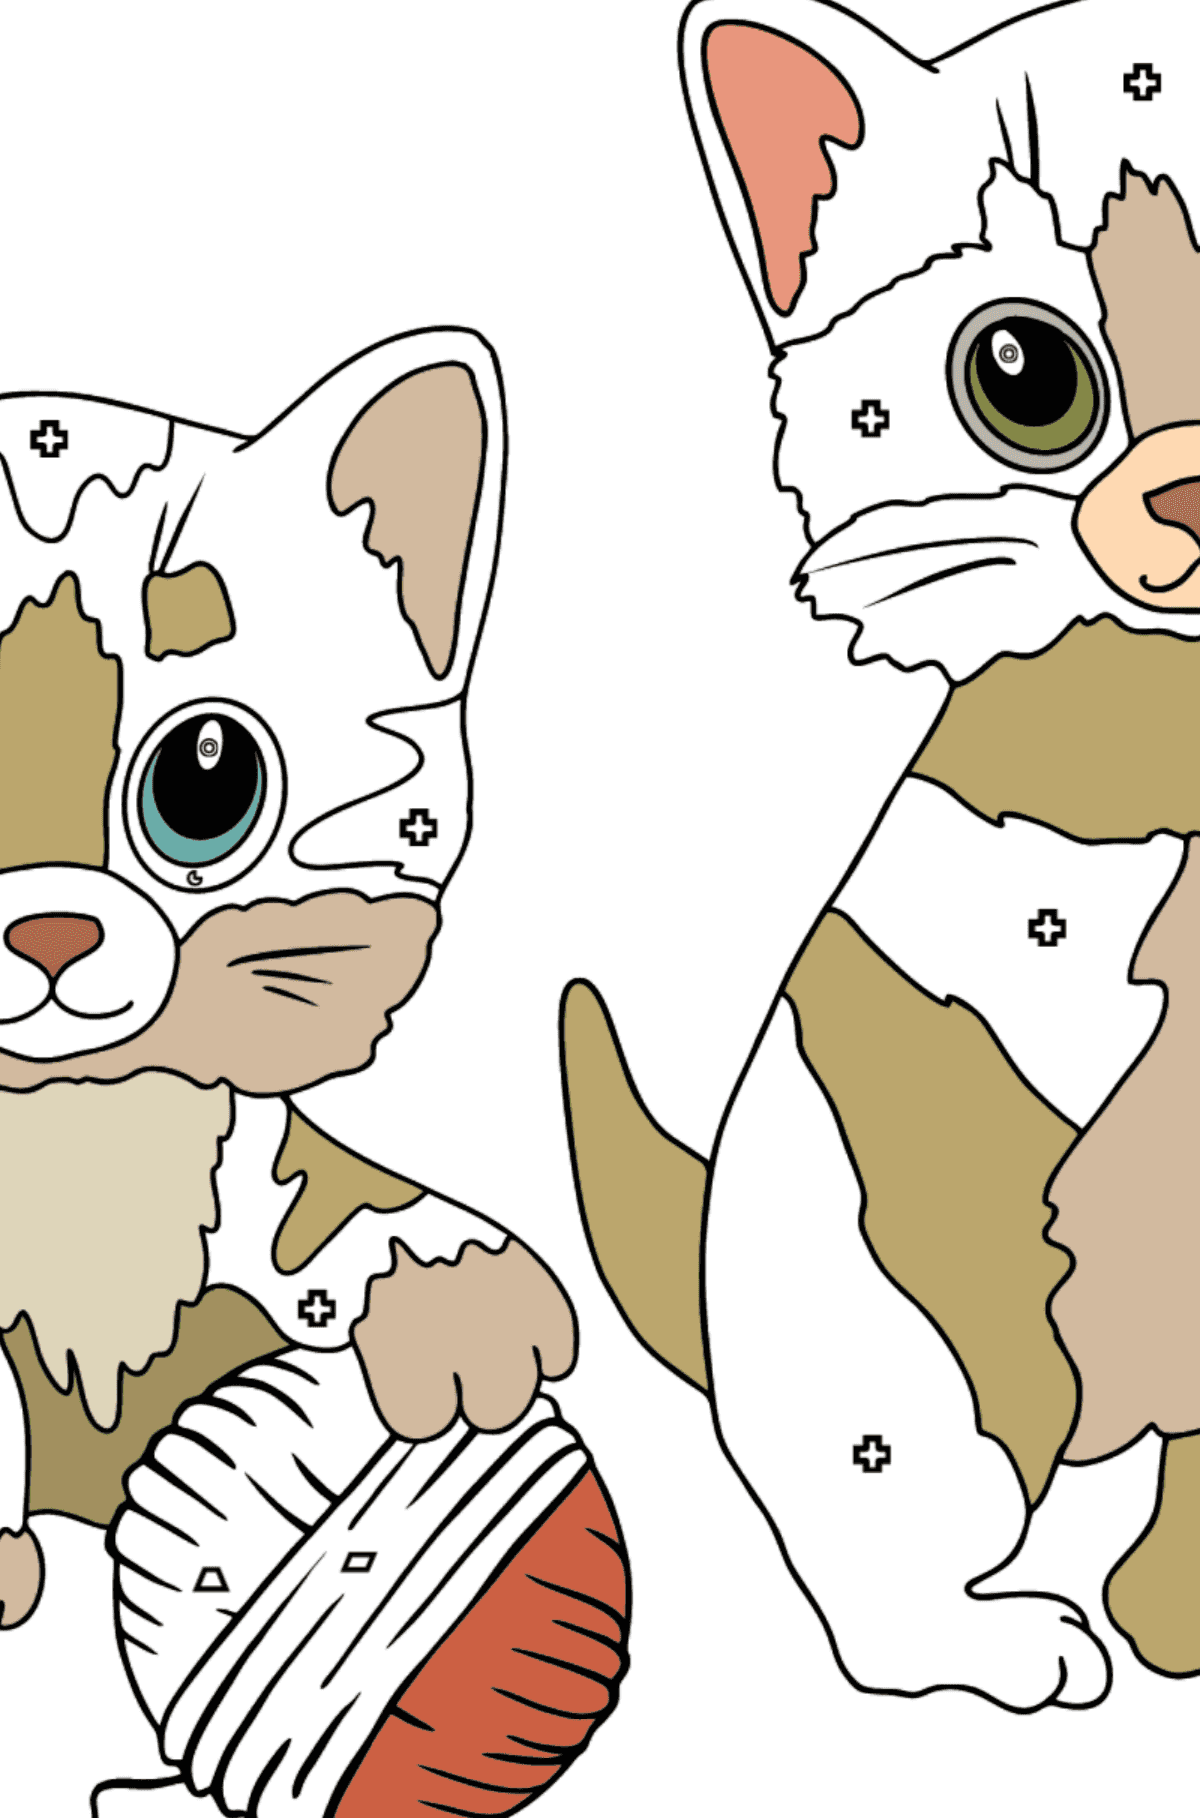 Coloring Page - Kitty Cat - Coloring by Geometric Shapes for Kids